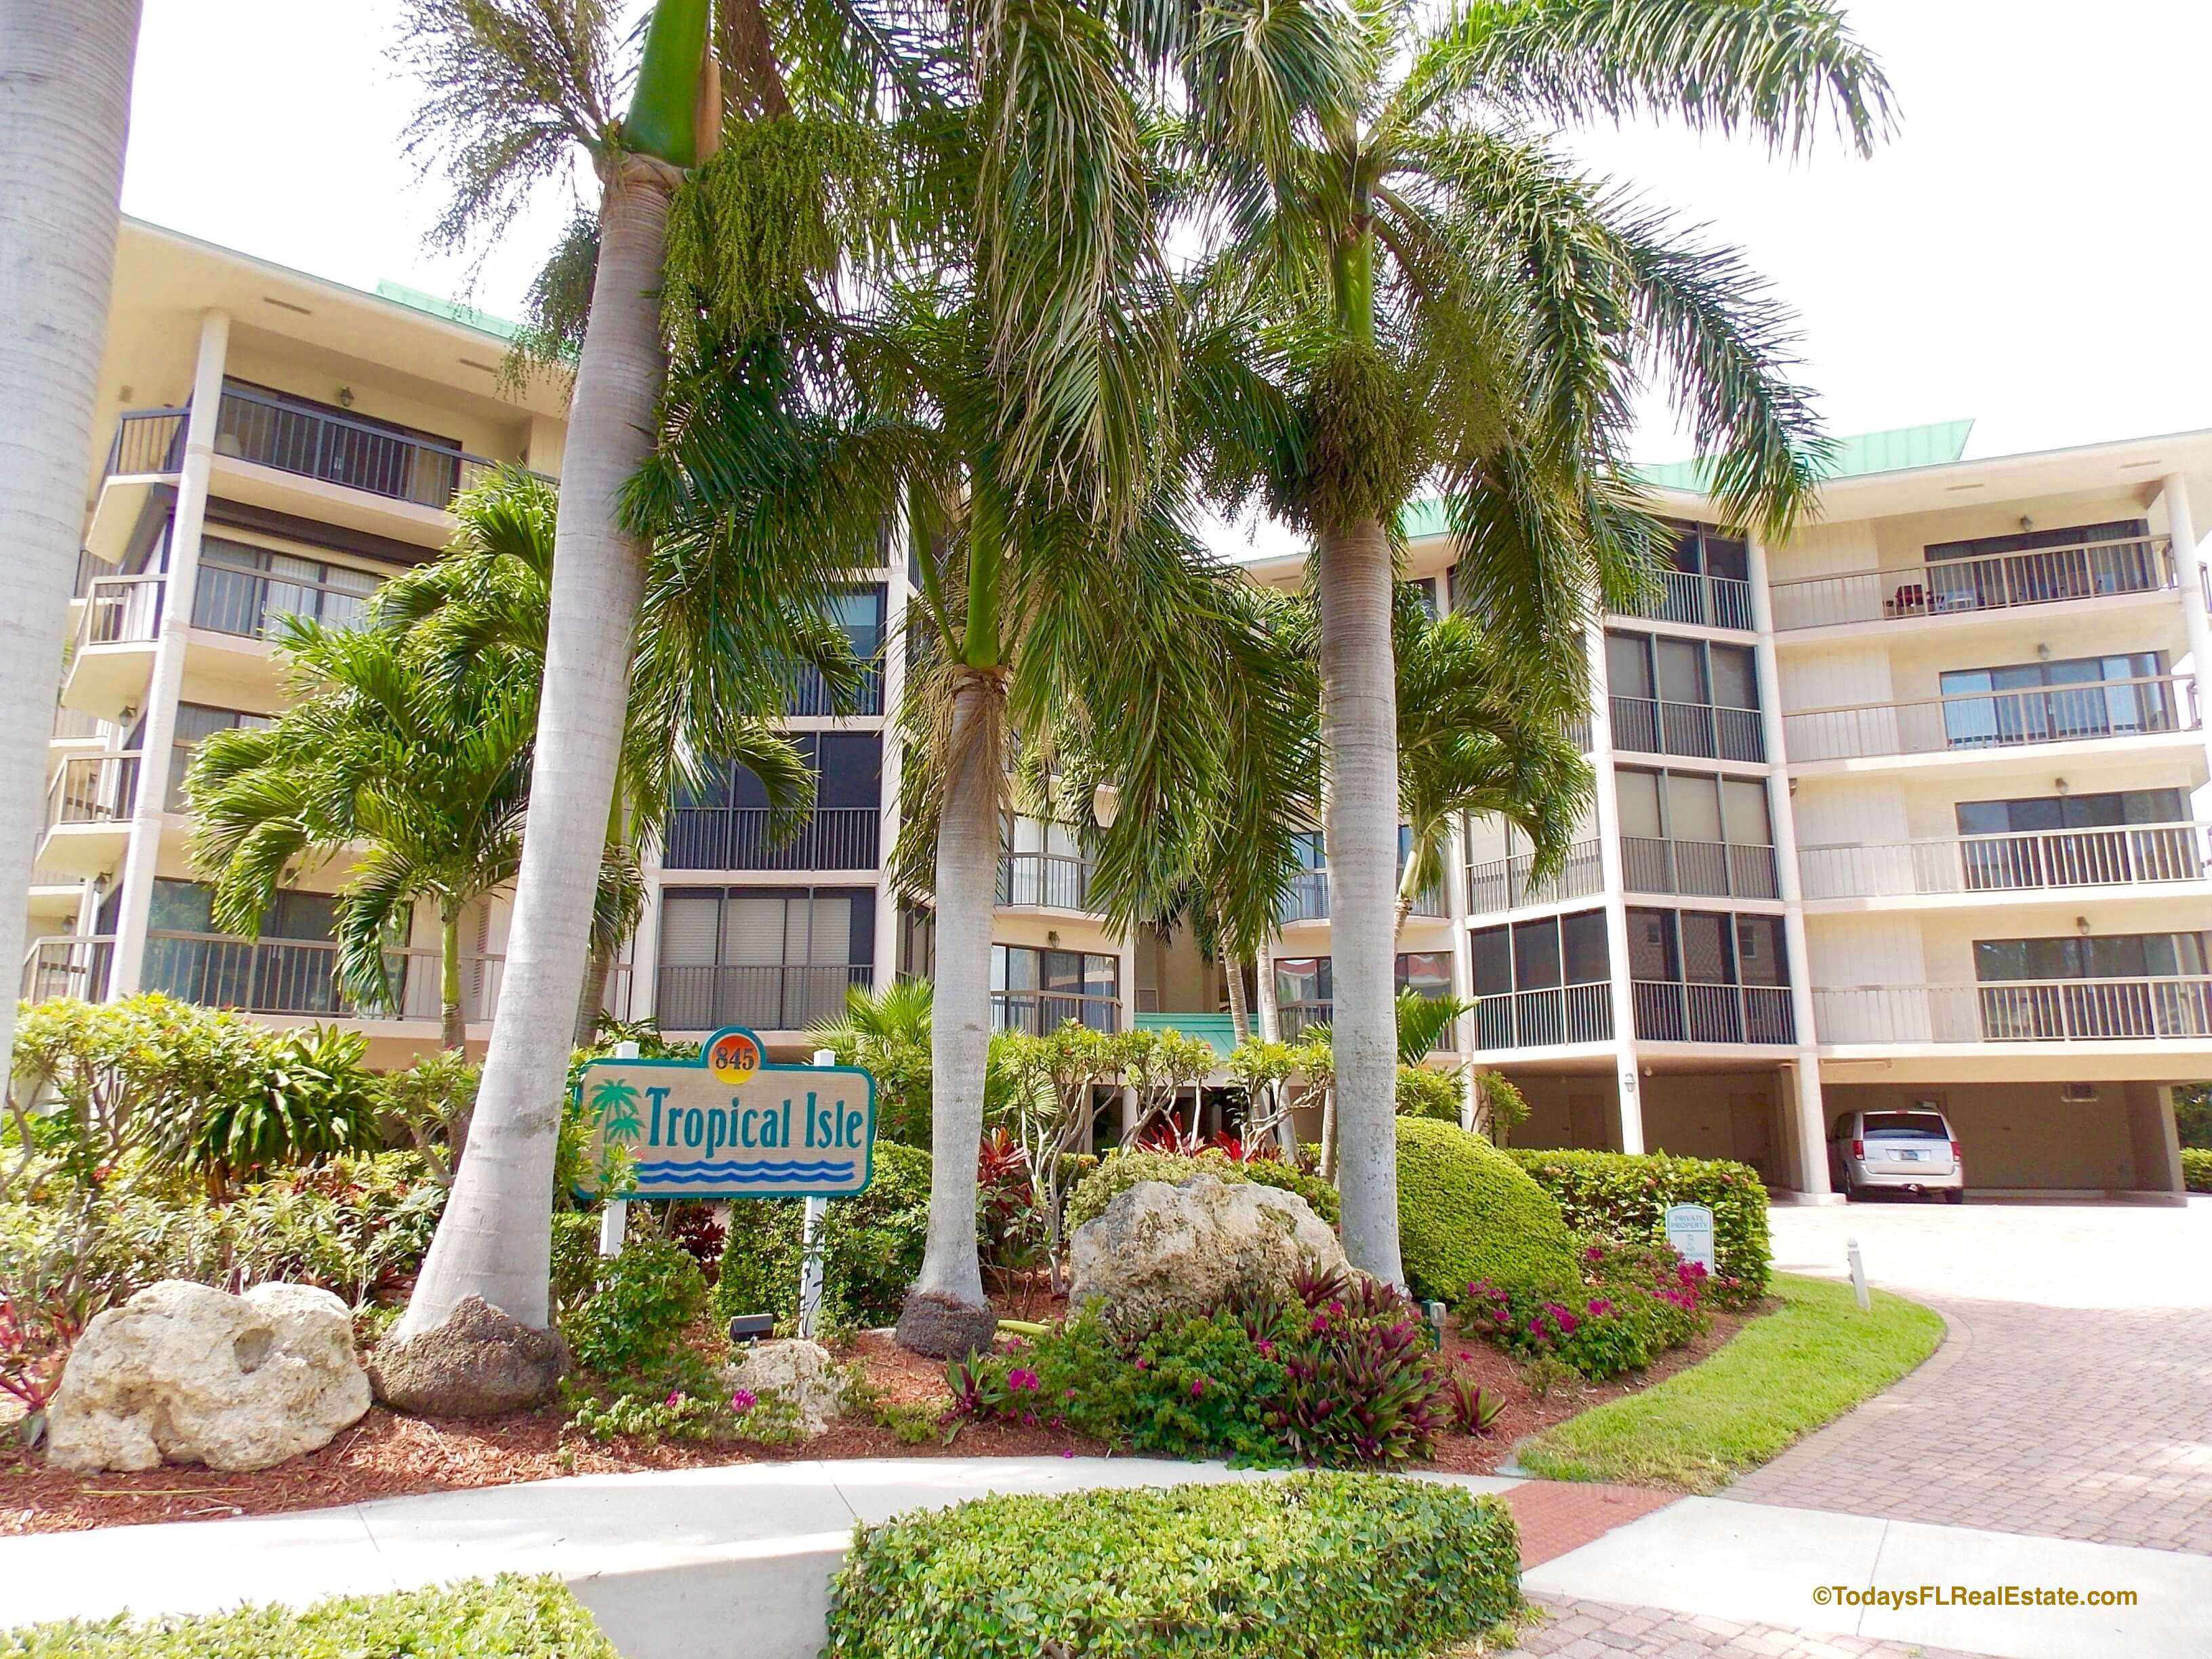 Walk to Beach Condos Marco Island, Marco Island Walk to Beach Condominiums